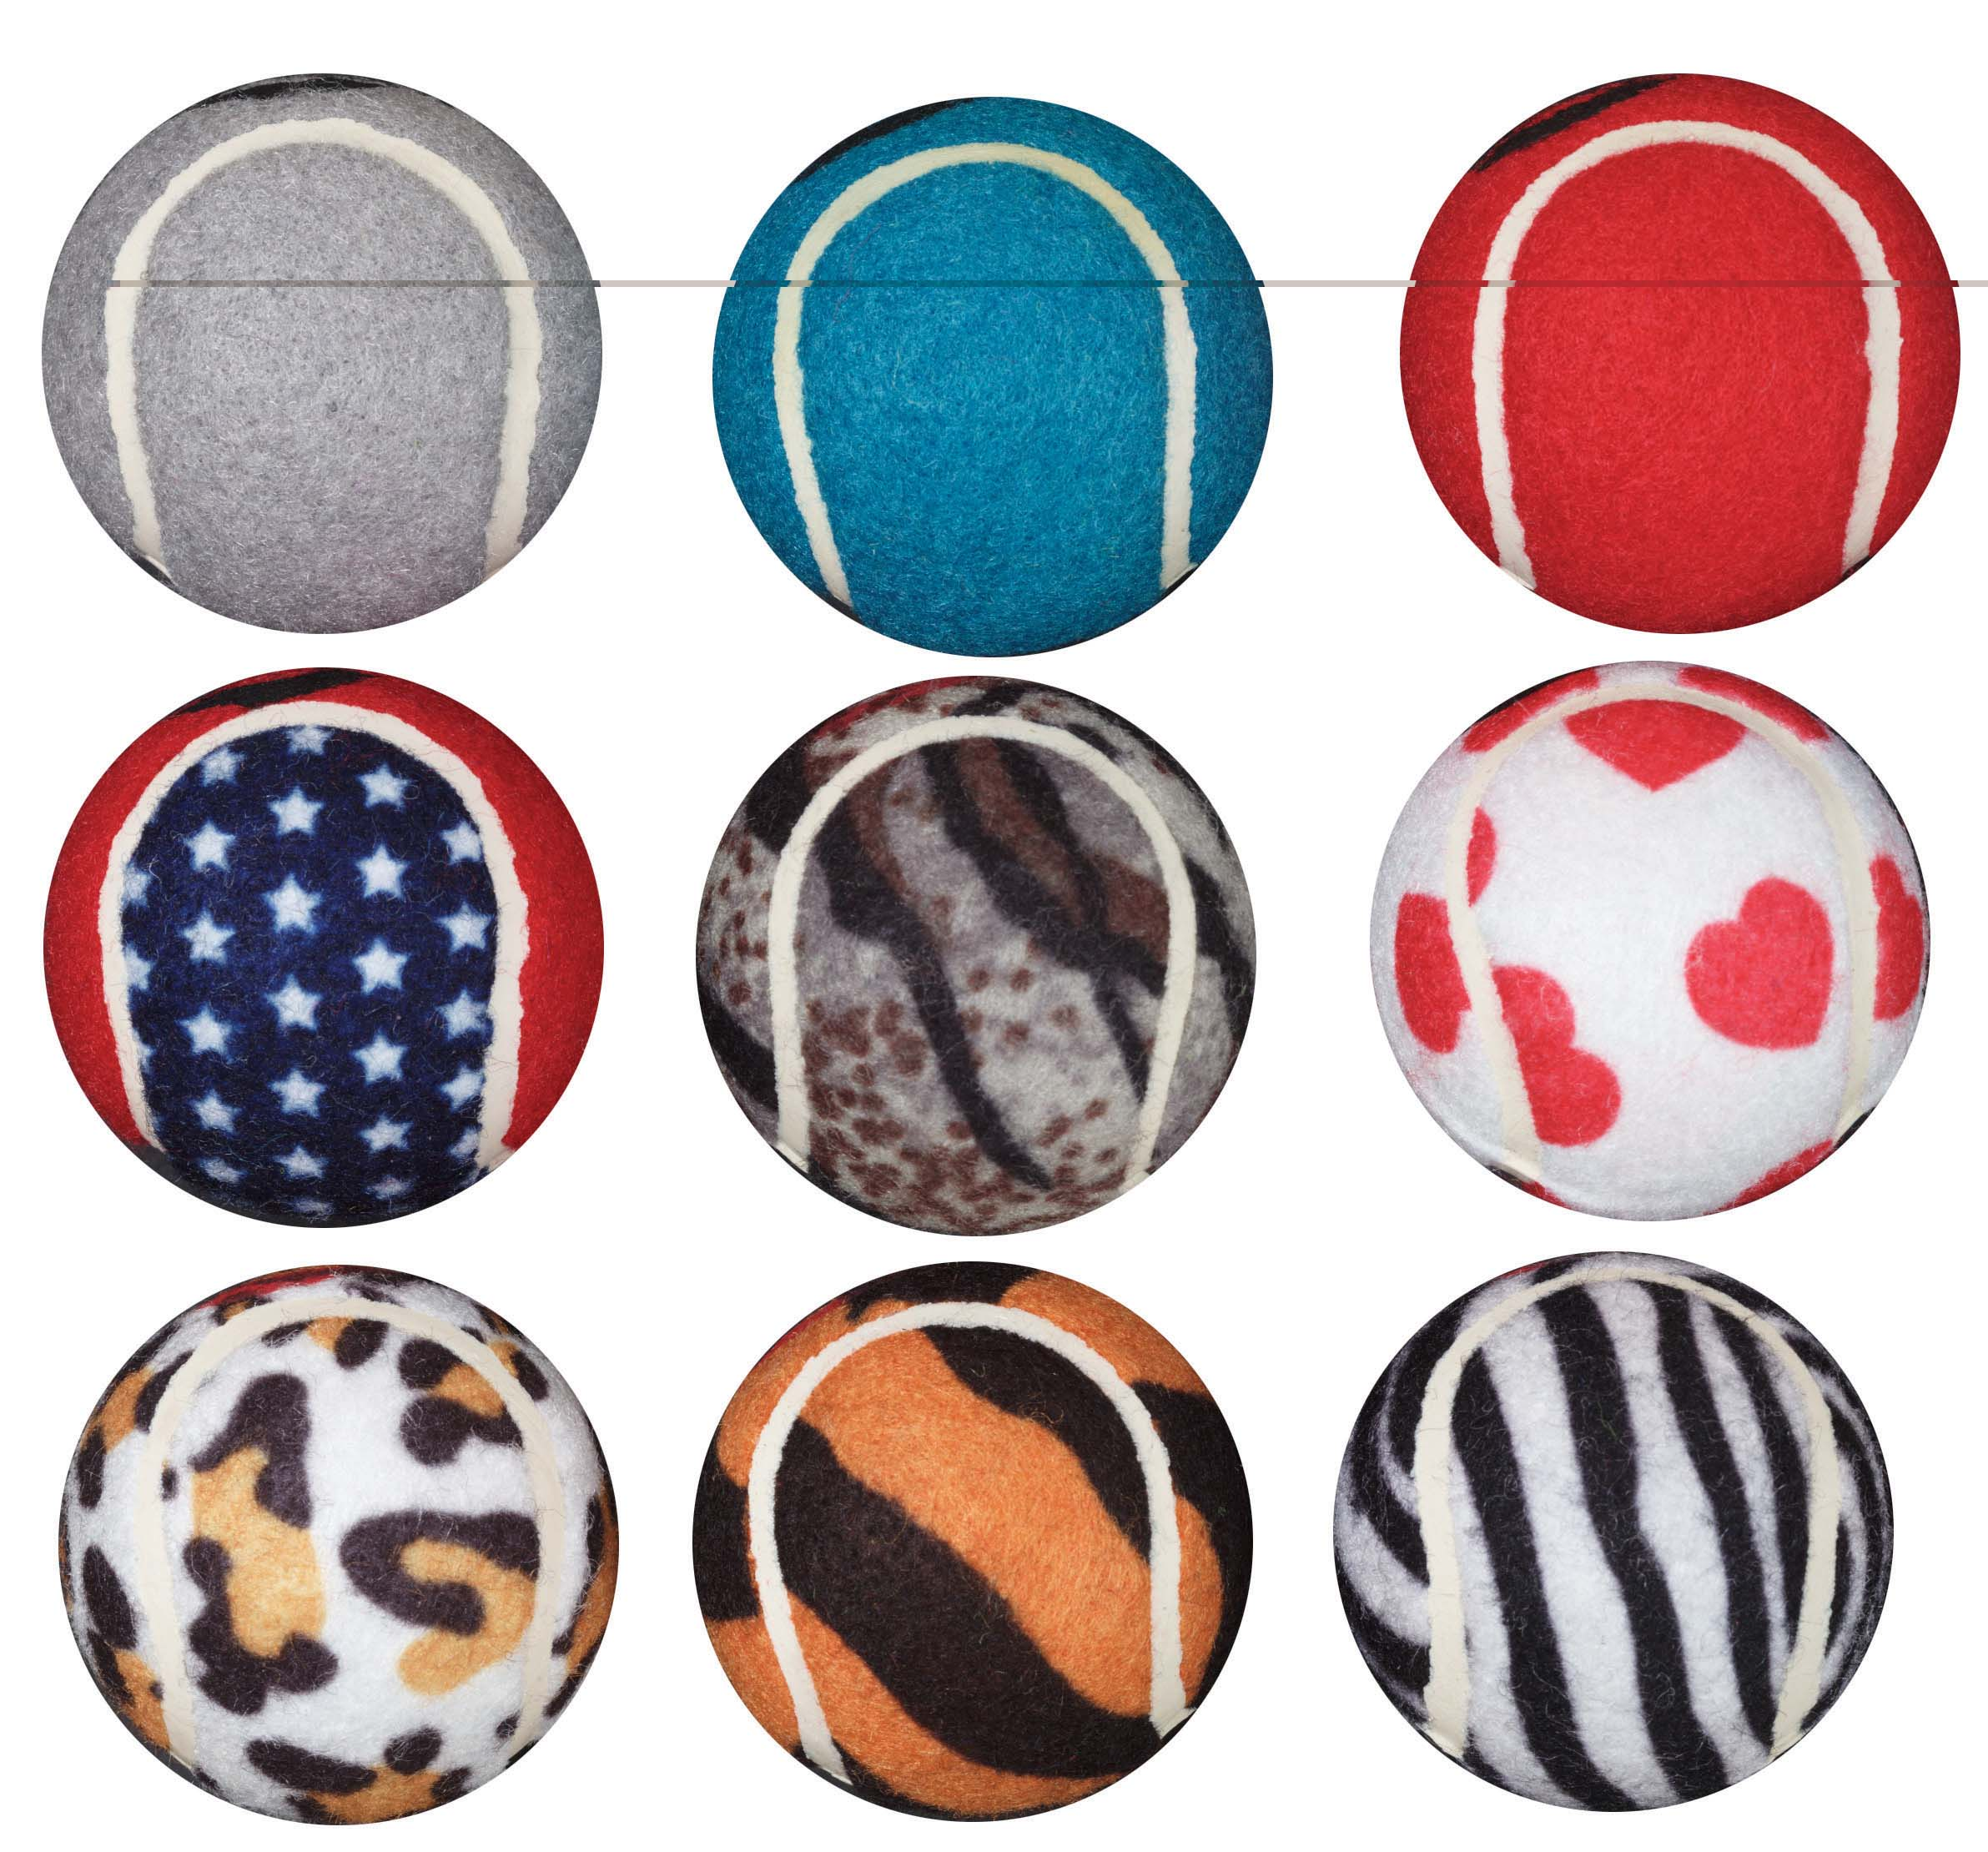 walkerballs-patriotic-1-pair-510-1035-9907-lr-3.jpg